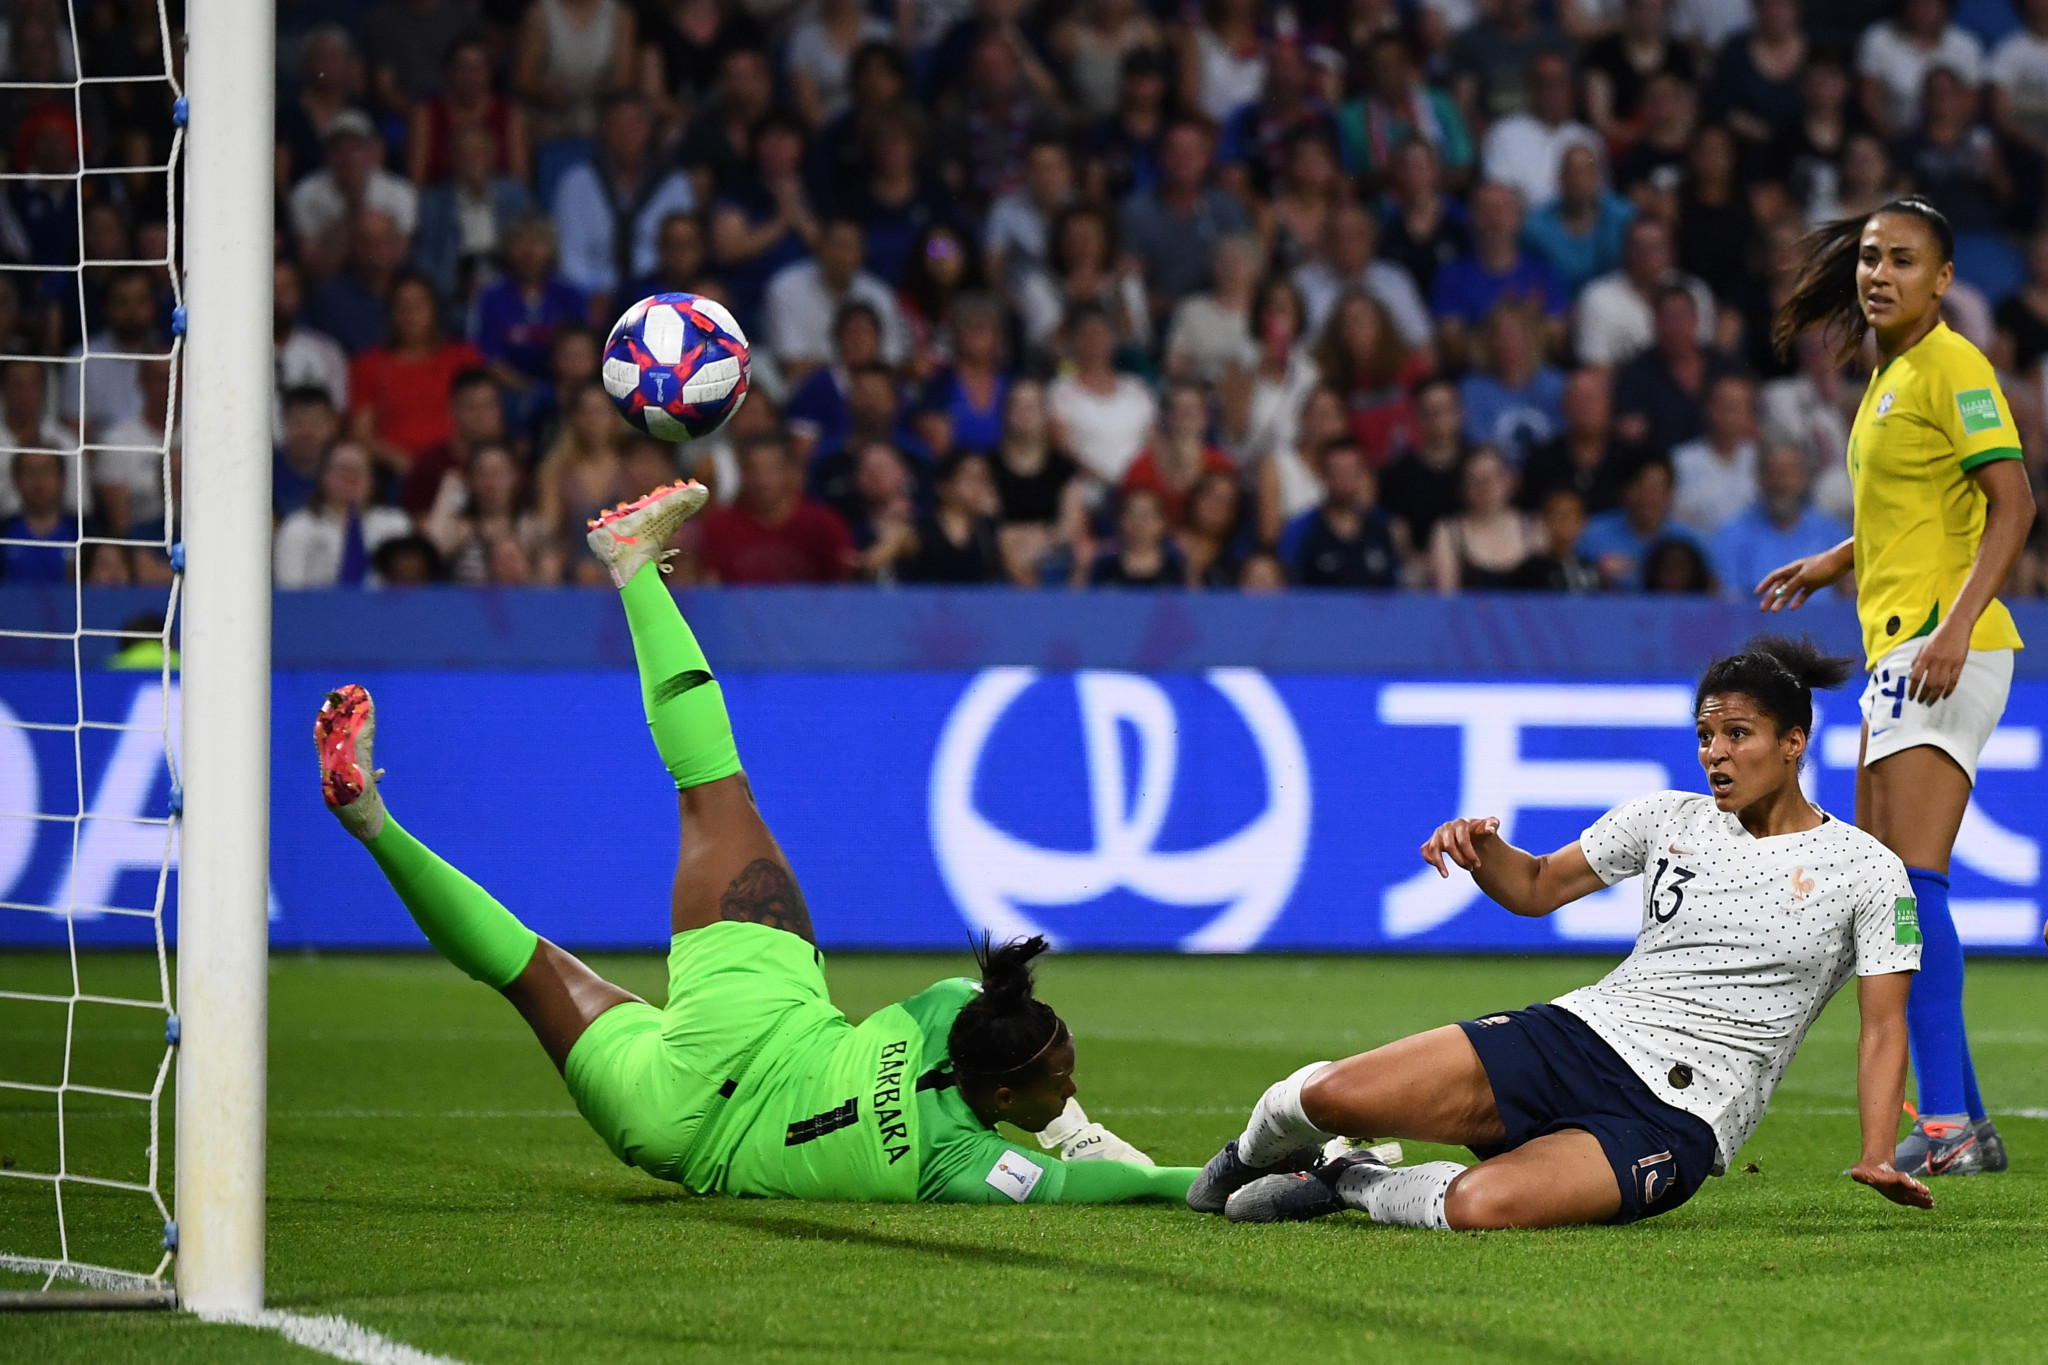 Gauvin eventually got her goal, sliding in to convert a low cross six minutes into the second half © Getty Images